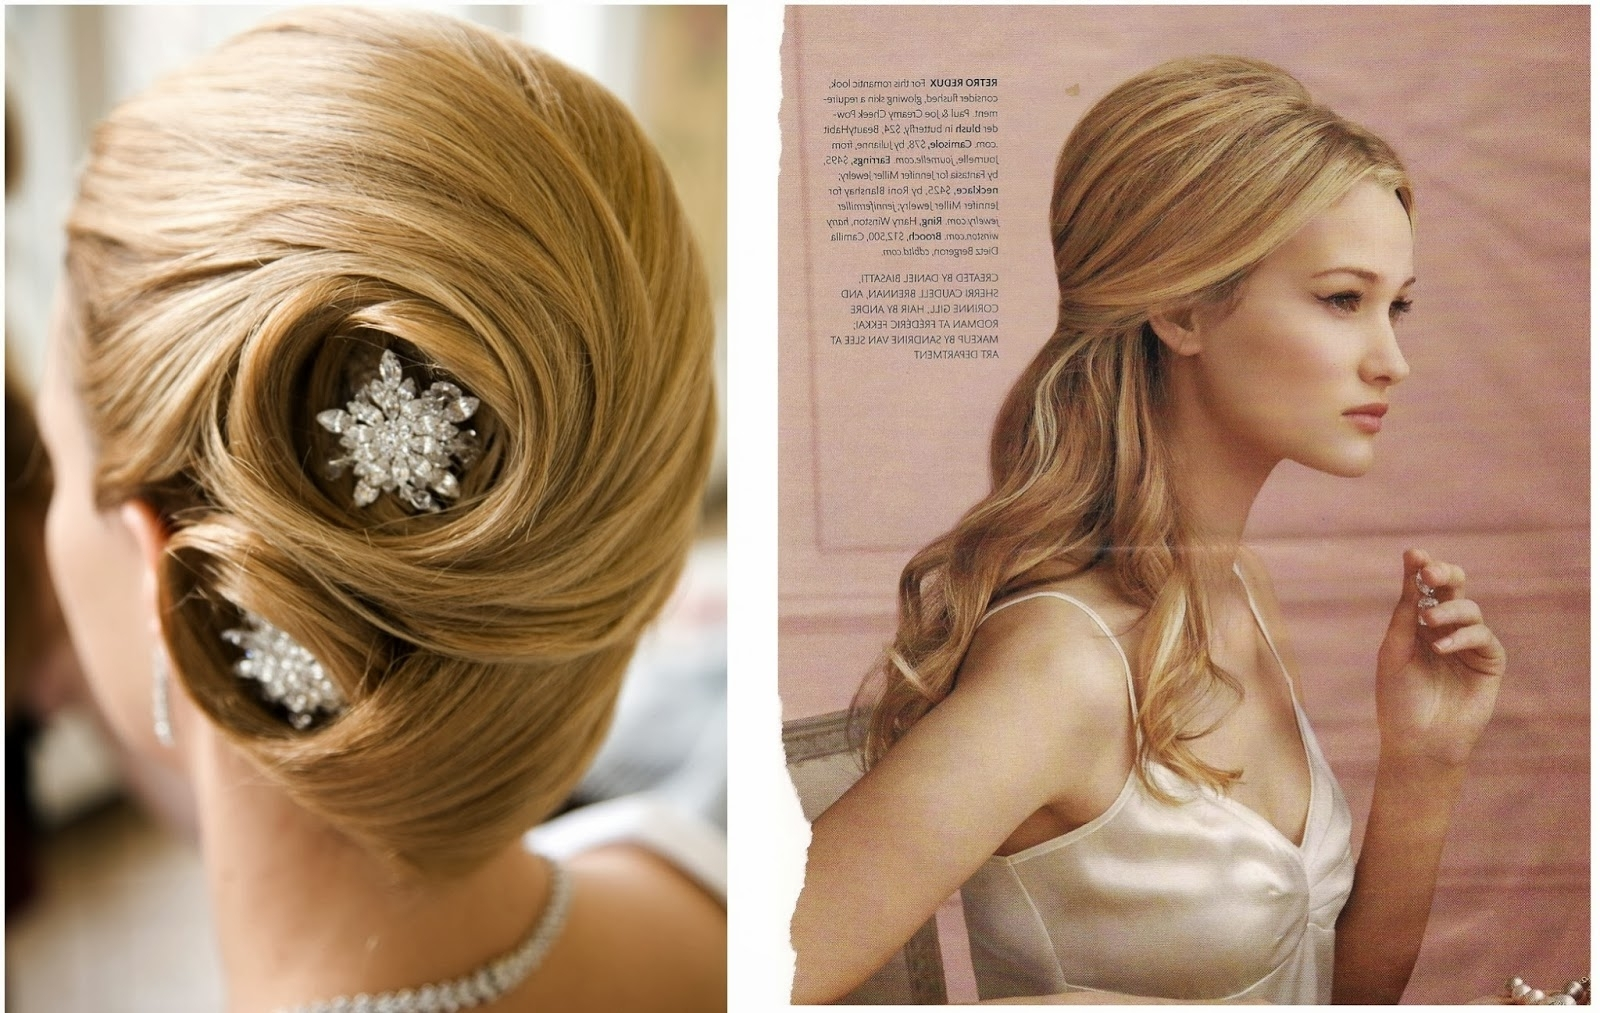 Braided Hairstyles For Long Hair Wedding (View 13 of 15)